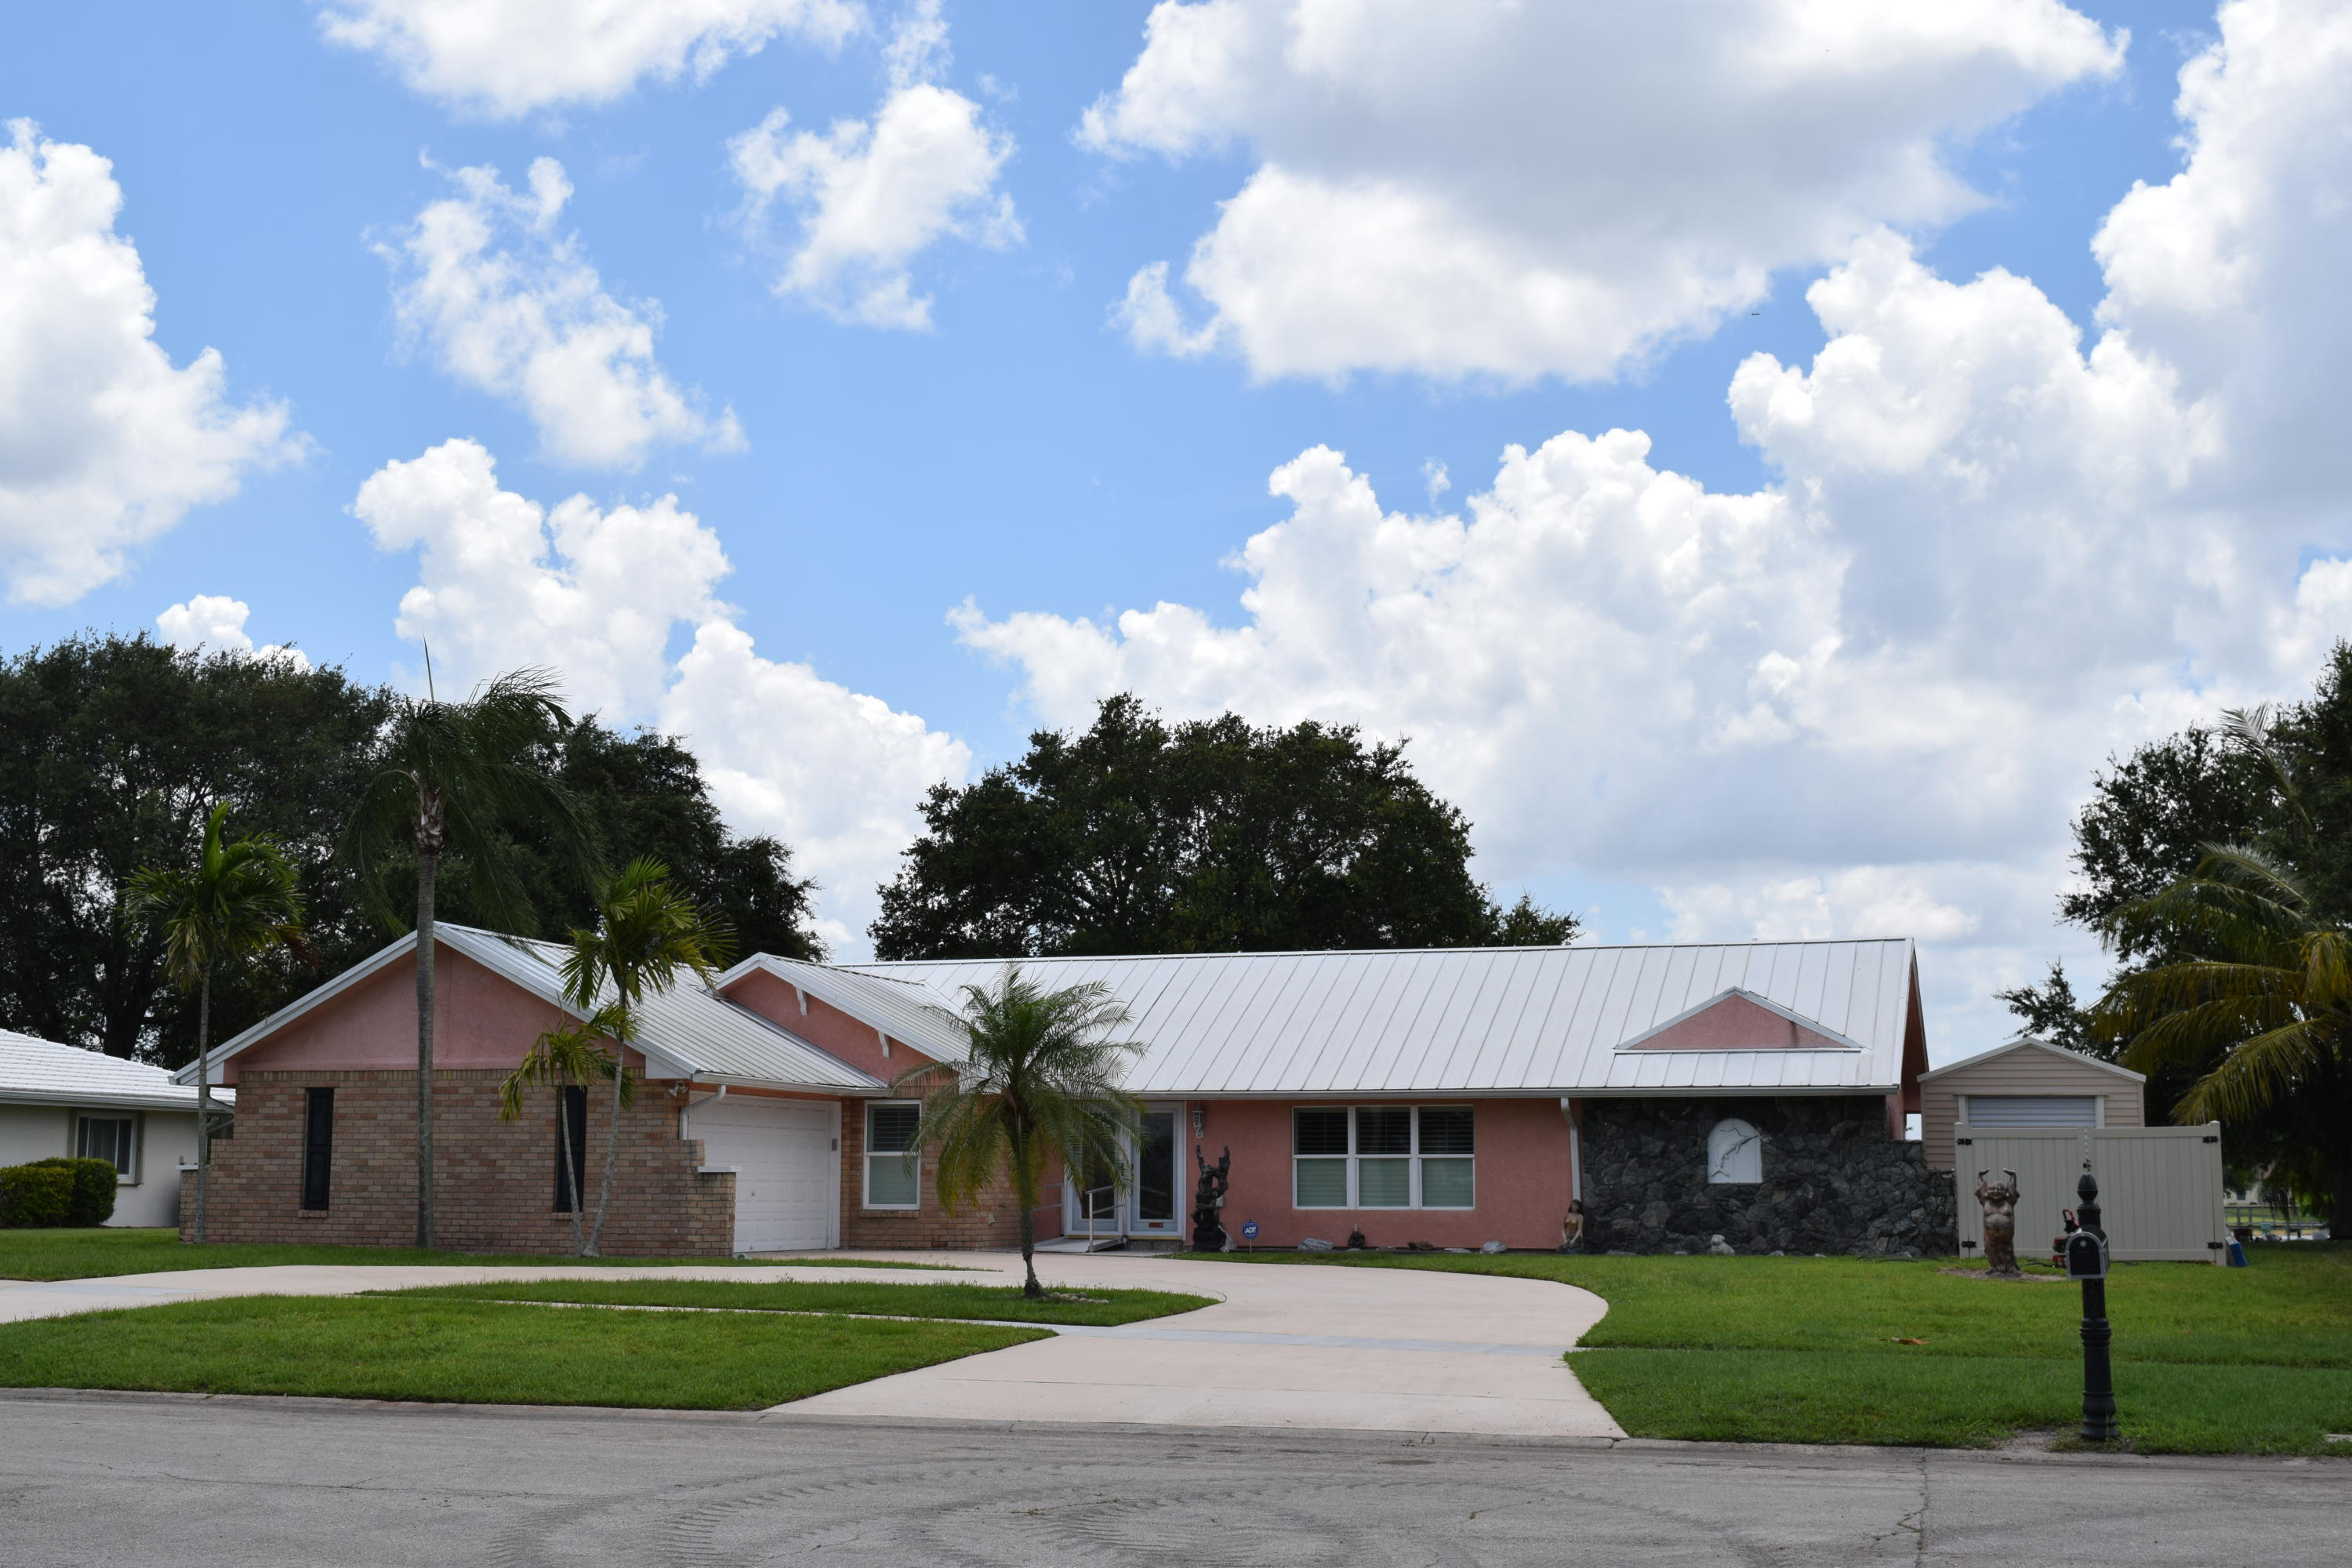 Home for sale in Sandpiper Bay area/Near Club Med Port Saint Lucie Florida